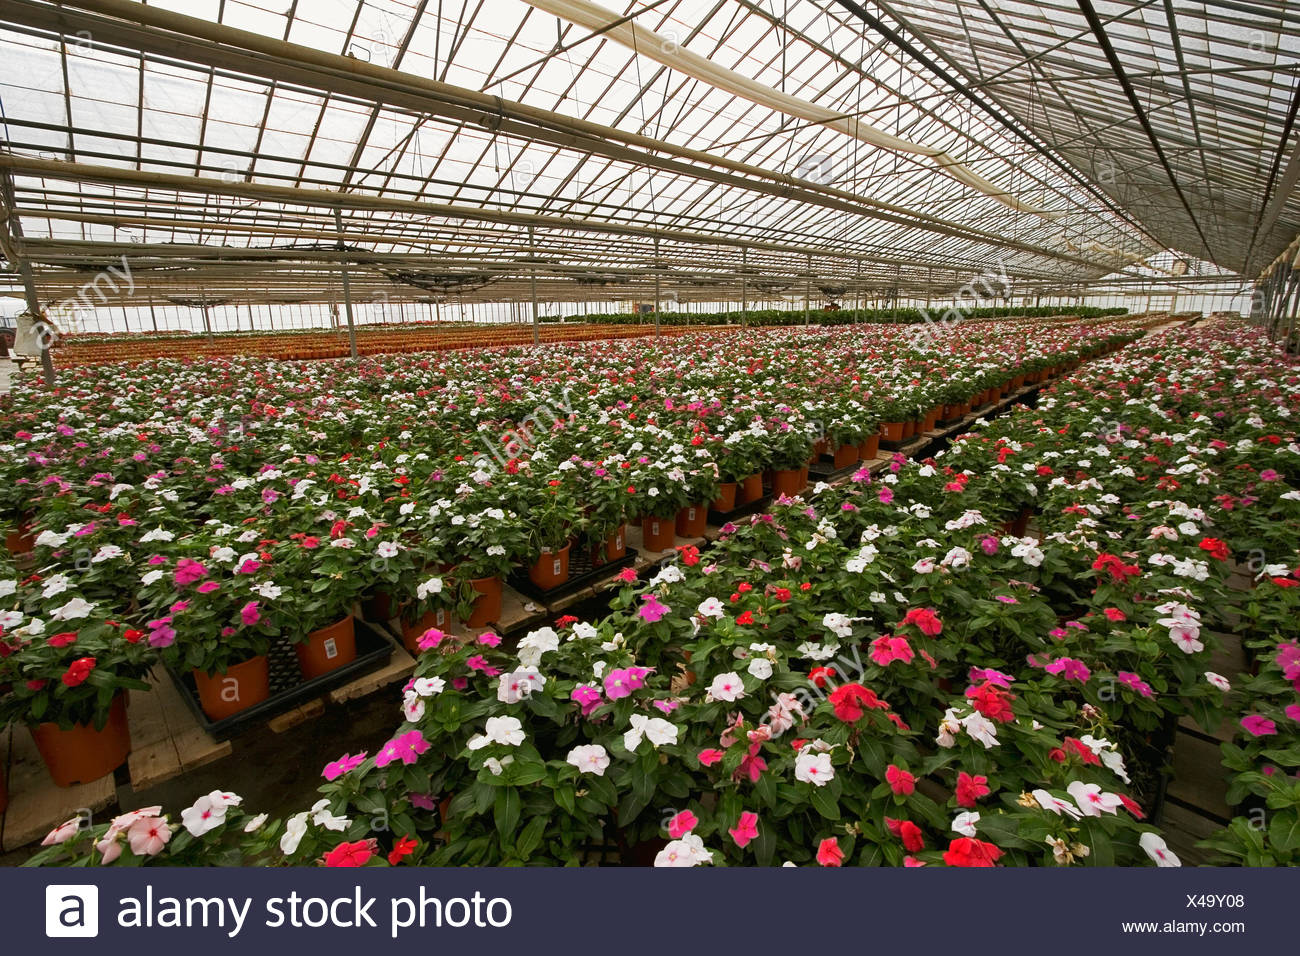 Agriculture - Vinca plants in bloom stage growing in a flower ...